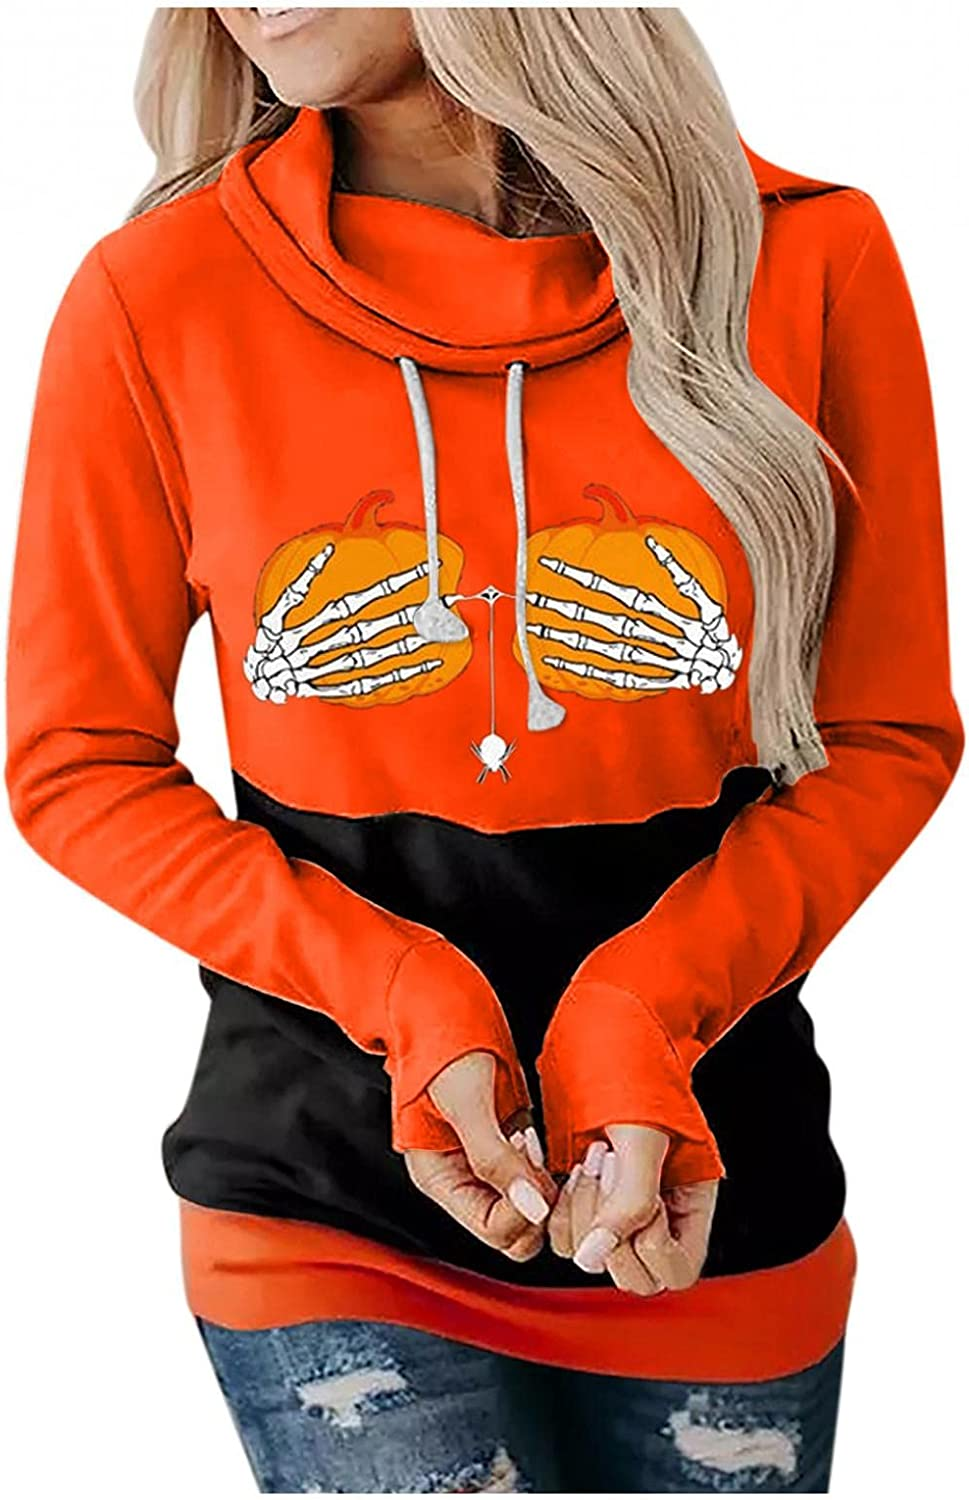 Yuanjay Women's Bombing free shipping Cute Print Drawstring Free shipping anywhere in the nation Patch Long-Sleeved Hoodies